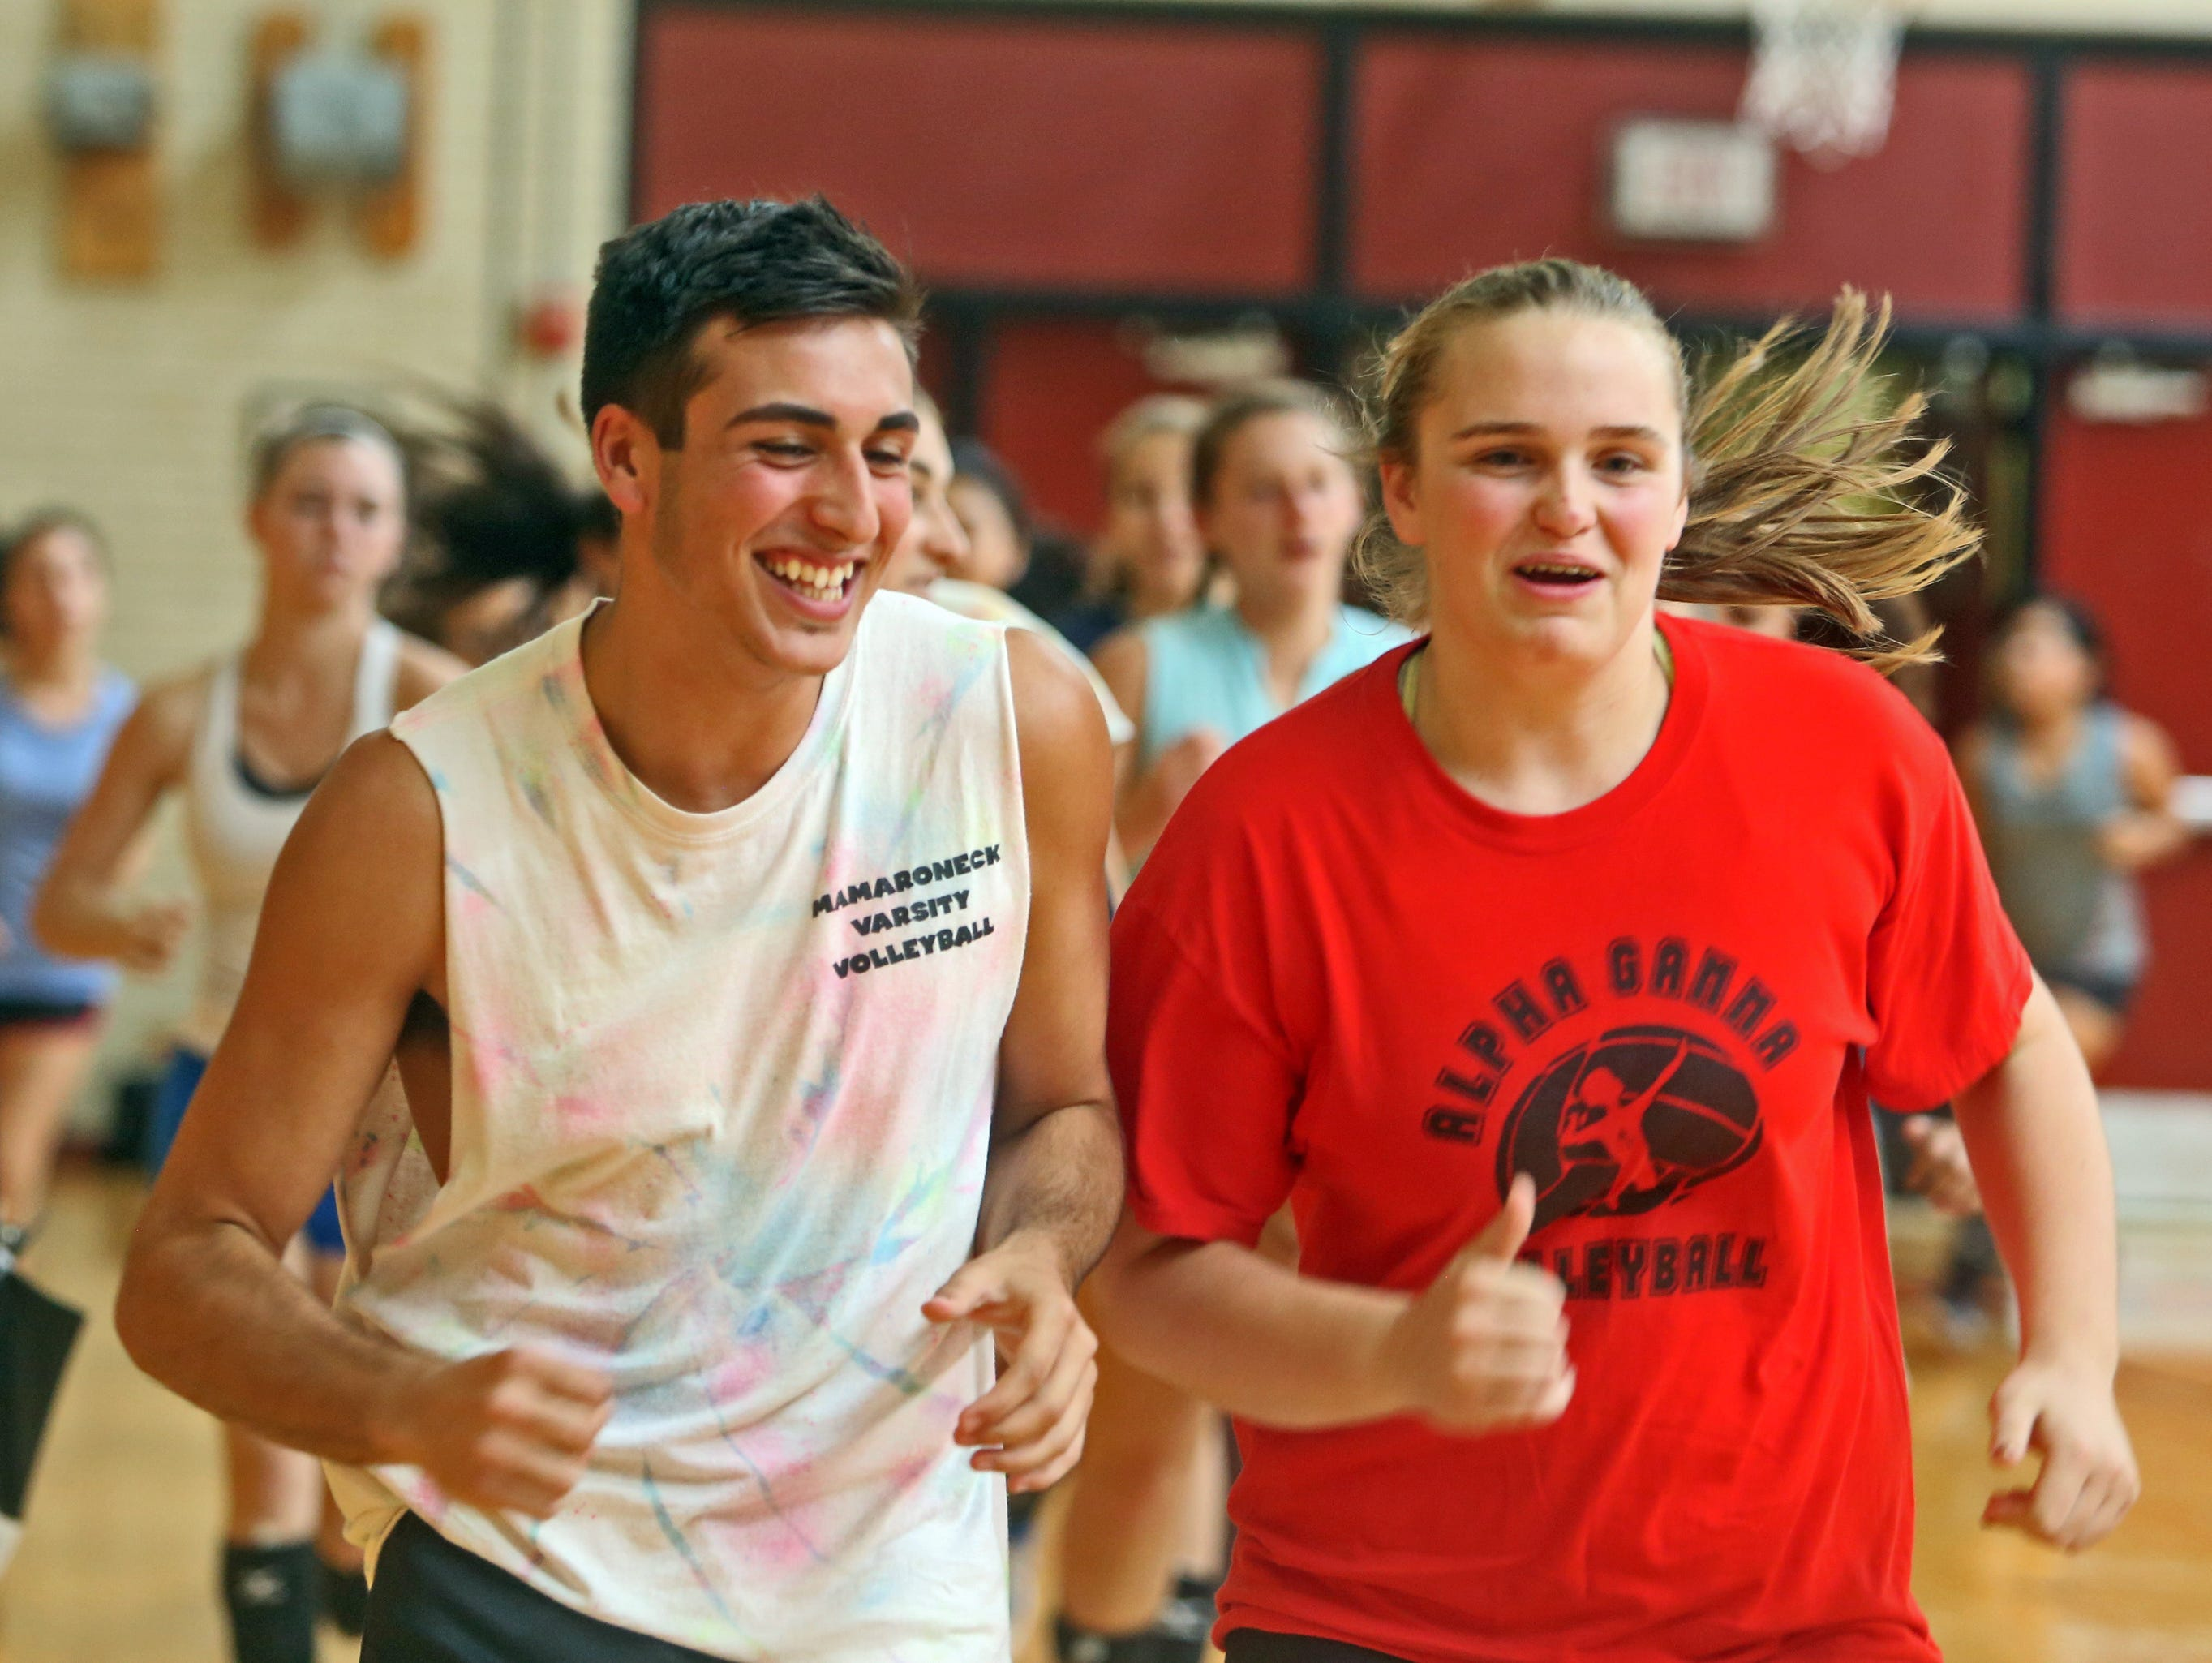 Andreo Otiniano, a senior at Mamaroneck High School, and a member of the girls volleyball team, warms up with teammate Maddie Sach at the start of practice Sept. 16, 2015. Otiniano played with the team as a sophomore, and still practices with the team and is on the roster, but present Section 1 rules do not allow him to play in matches.